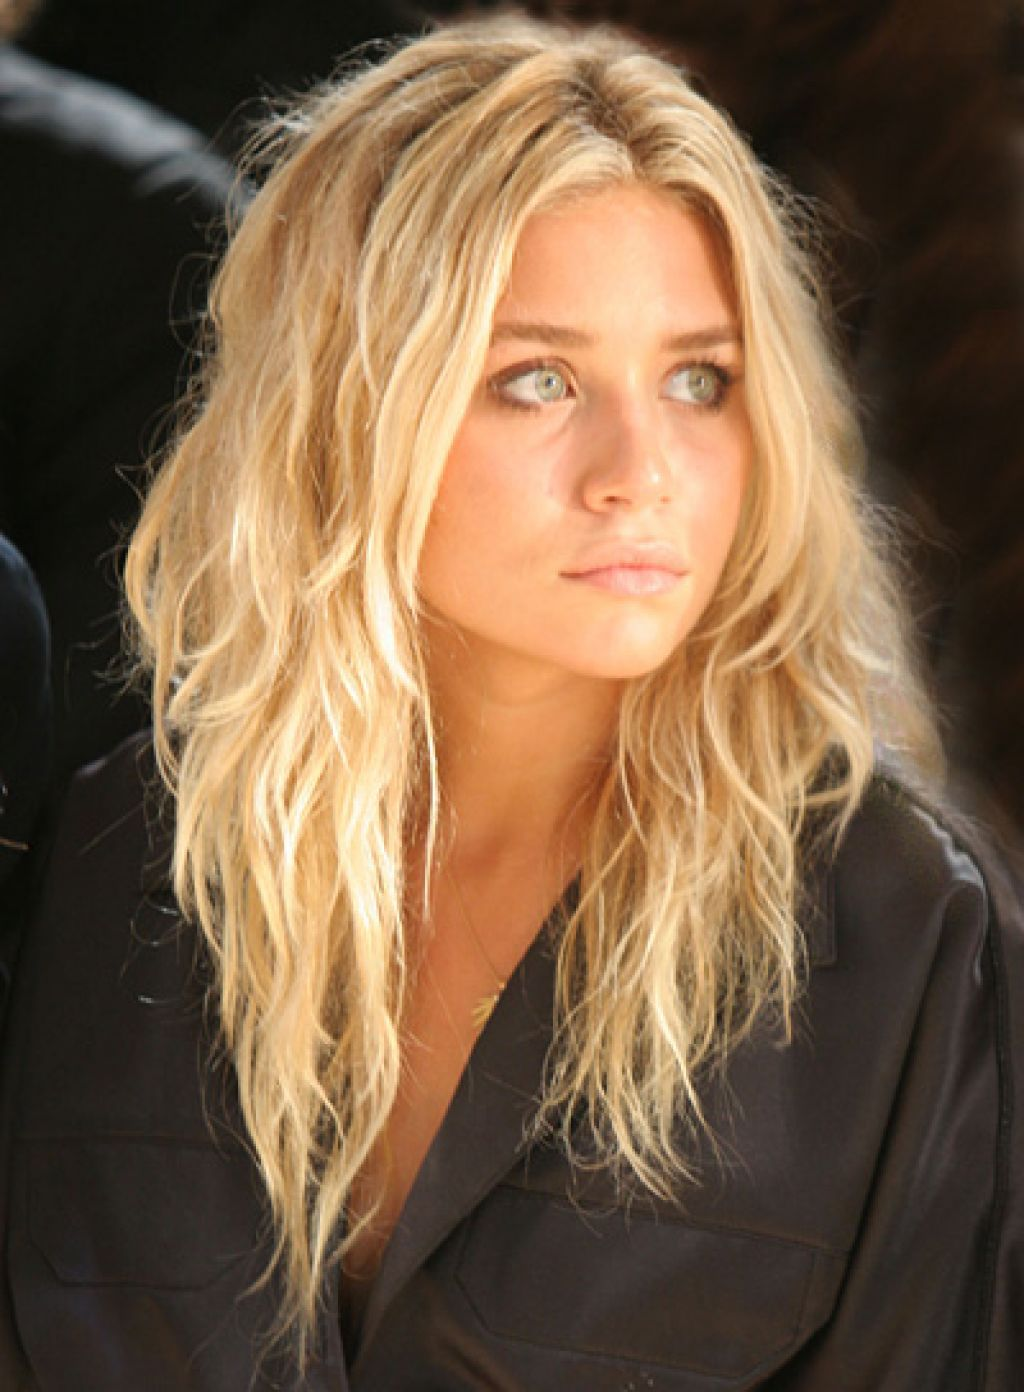 ashley olsen hair - 2015 hairstyles trend hairstyles with side